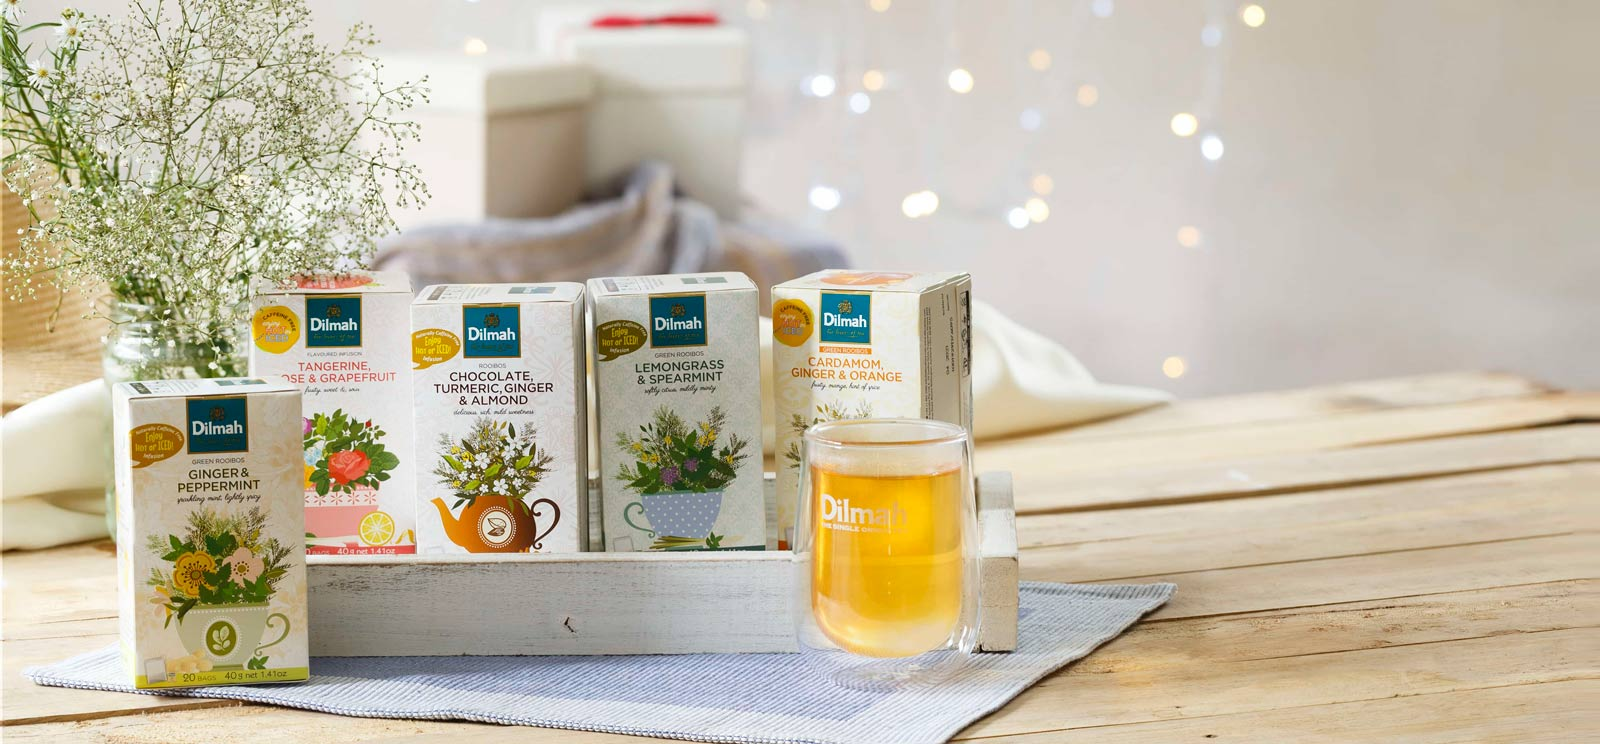 Herbal Infusion and Fruit Tea from Dilmah